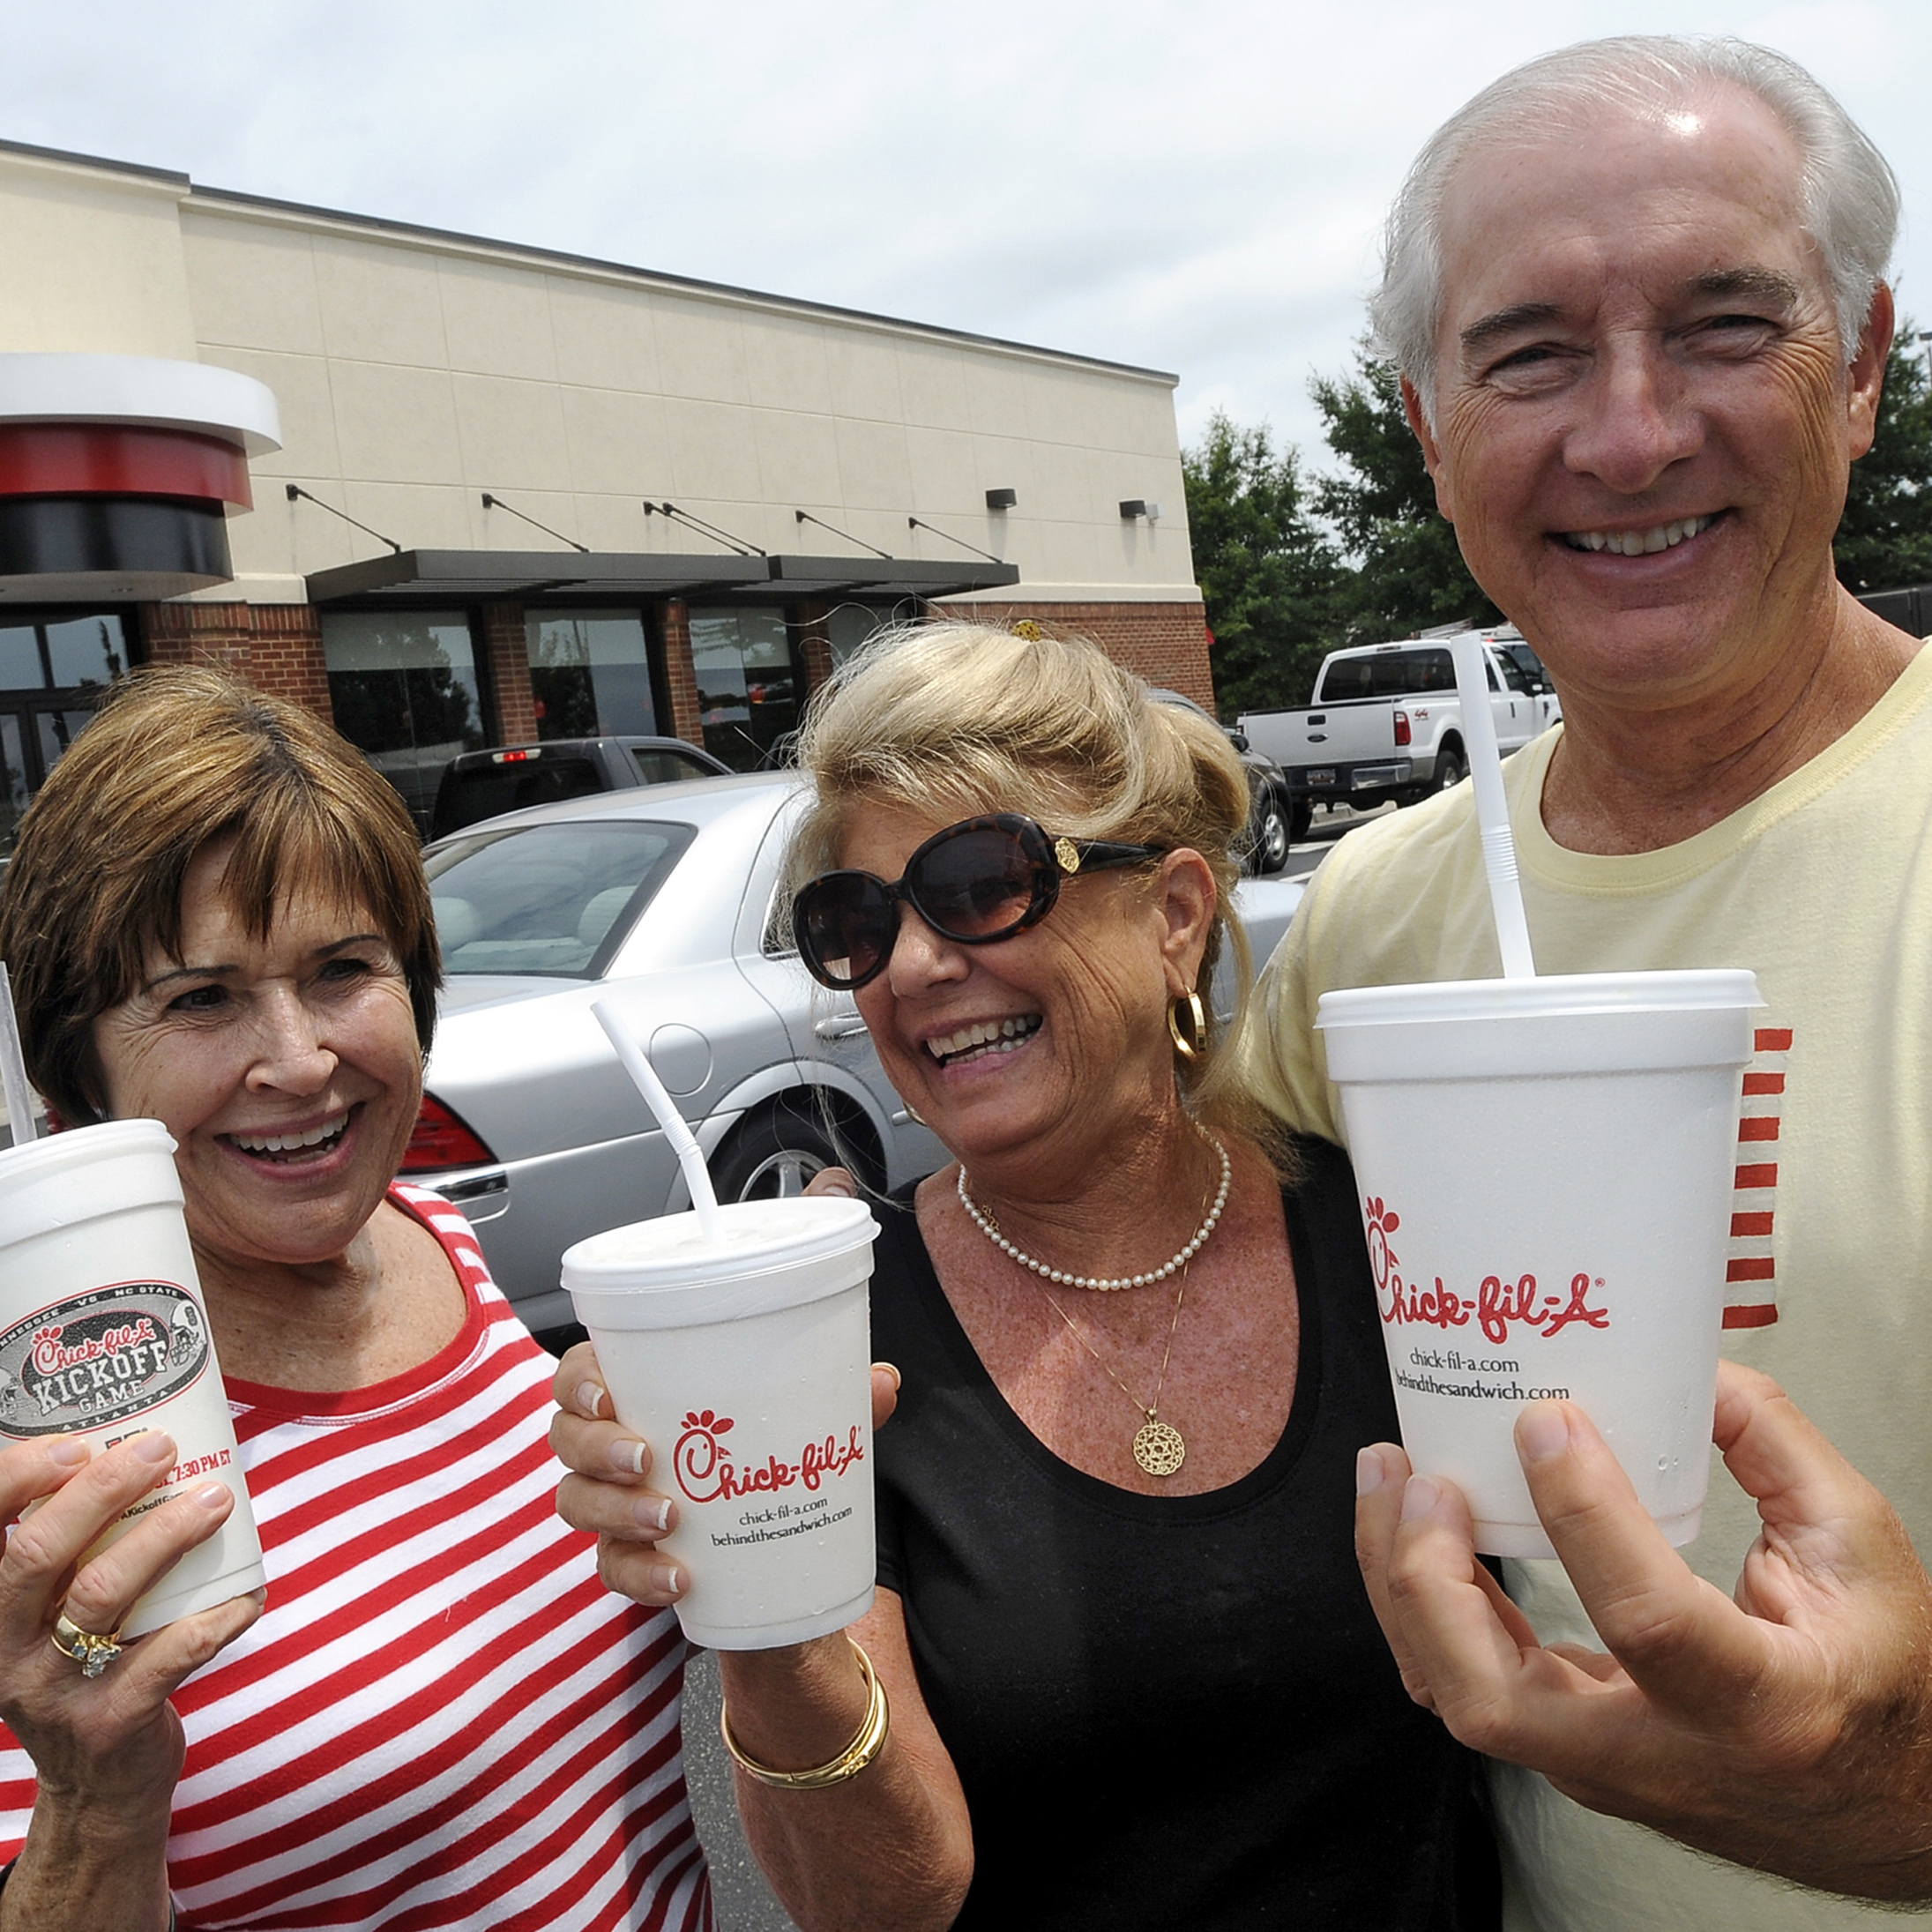 In Myrtle Beach, S.C., today,  Brenda Howard (left) joined friends Cecelia and Hines Pegram for lunch on Chick-fil-A Appreciation Day.